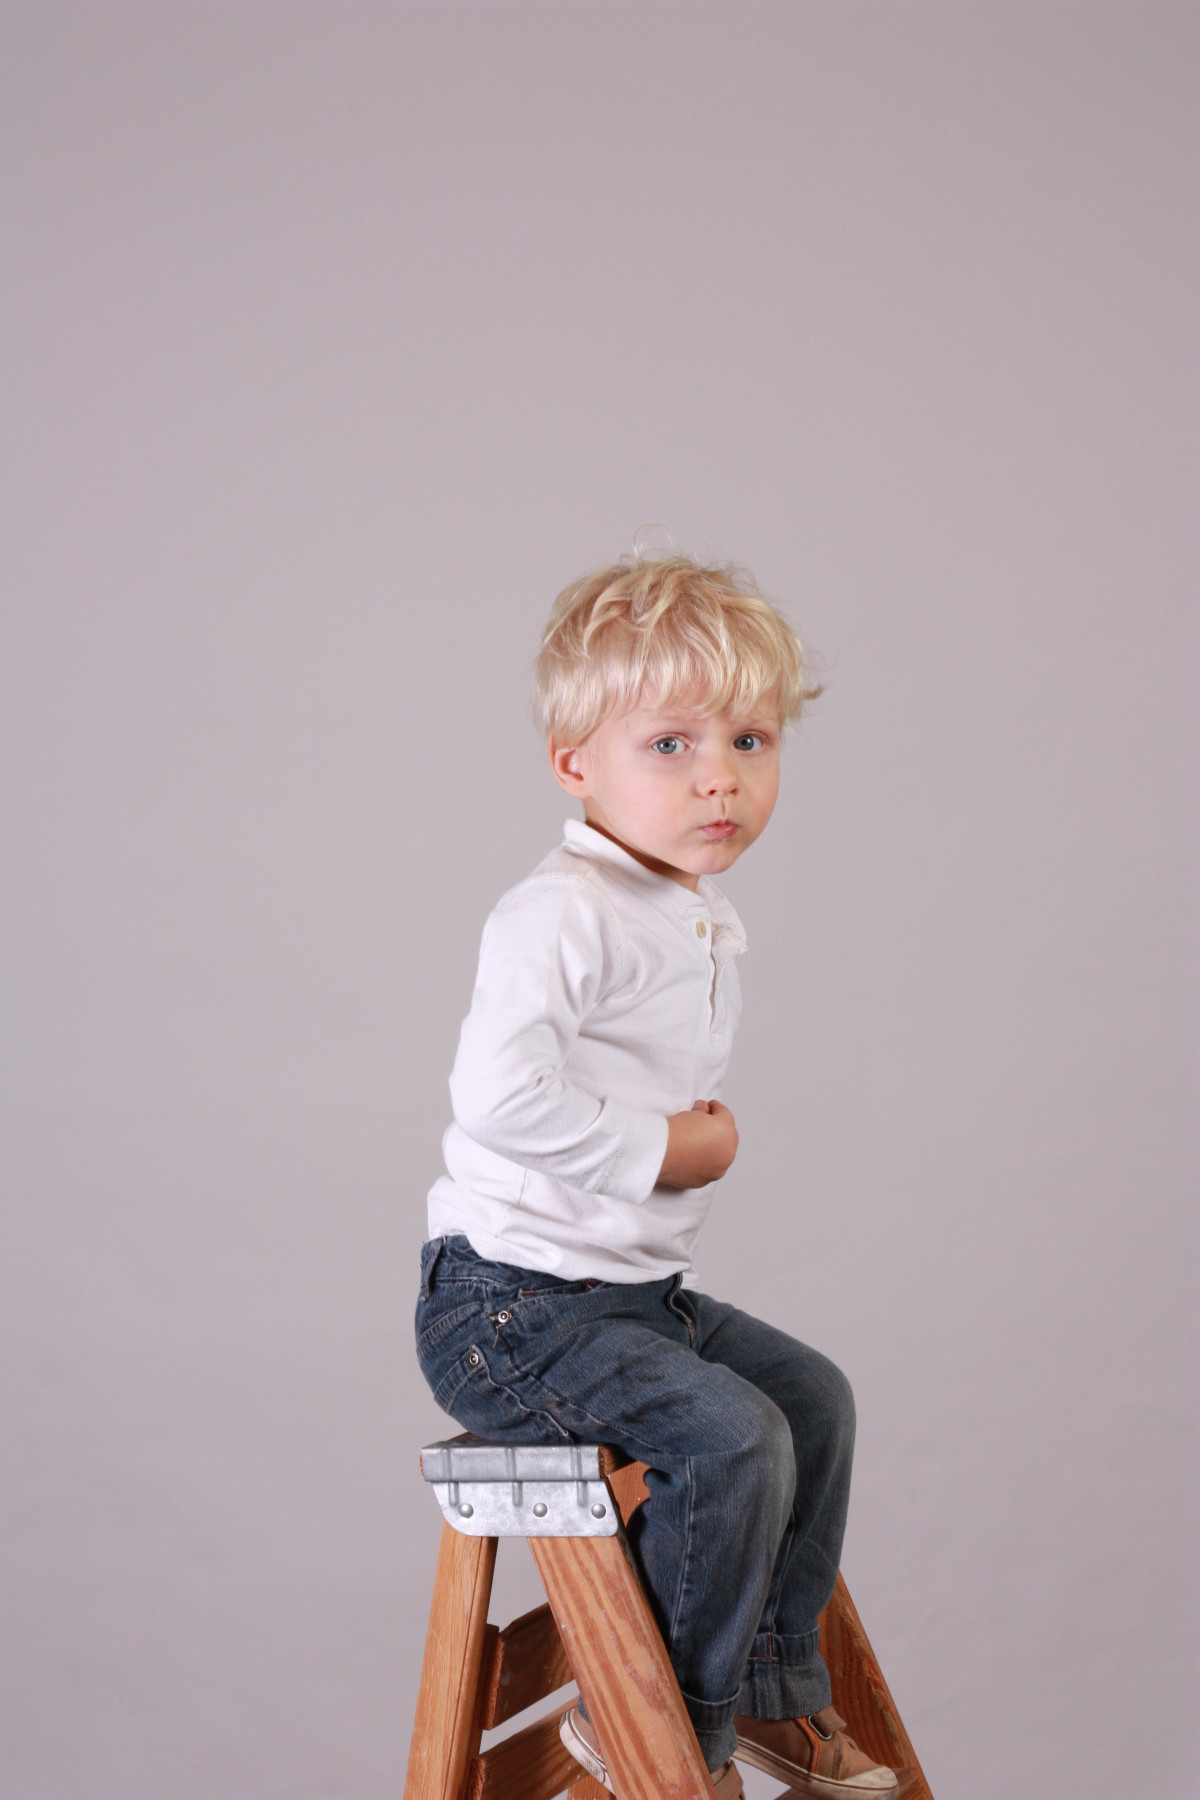 Toddler Boy Chair Free Images Desk Vintage Retro Chair Sitting Child